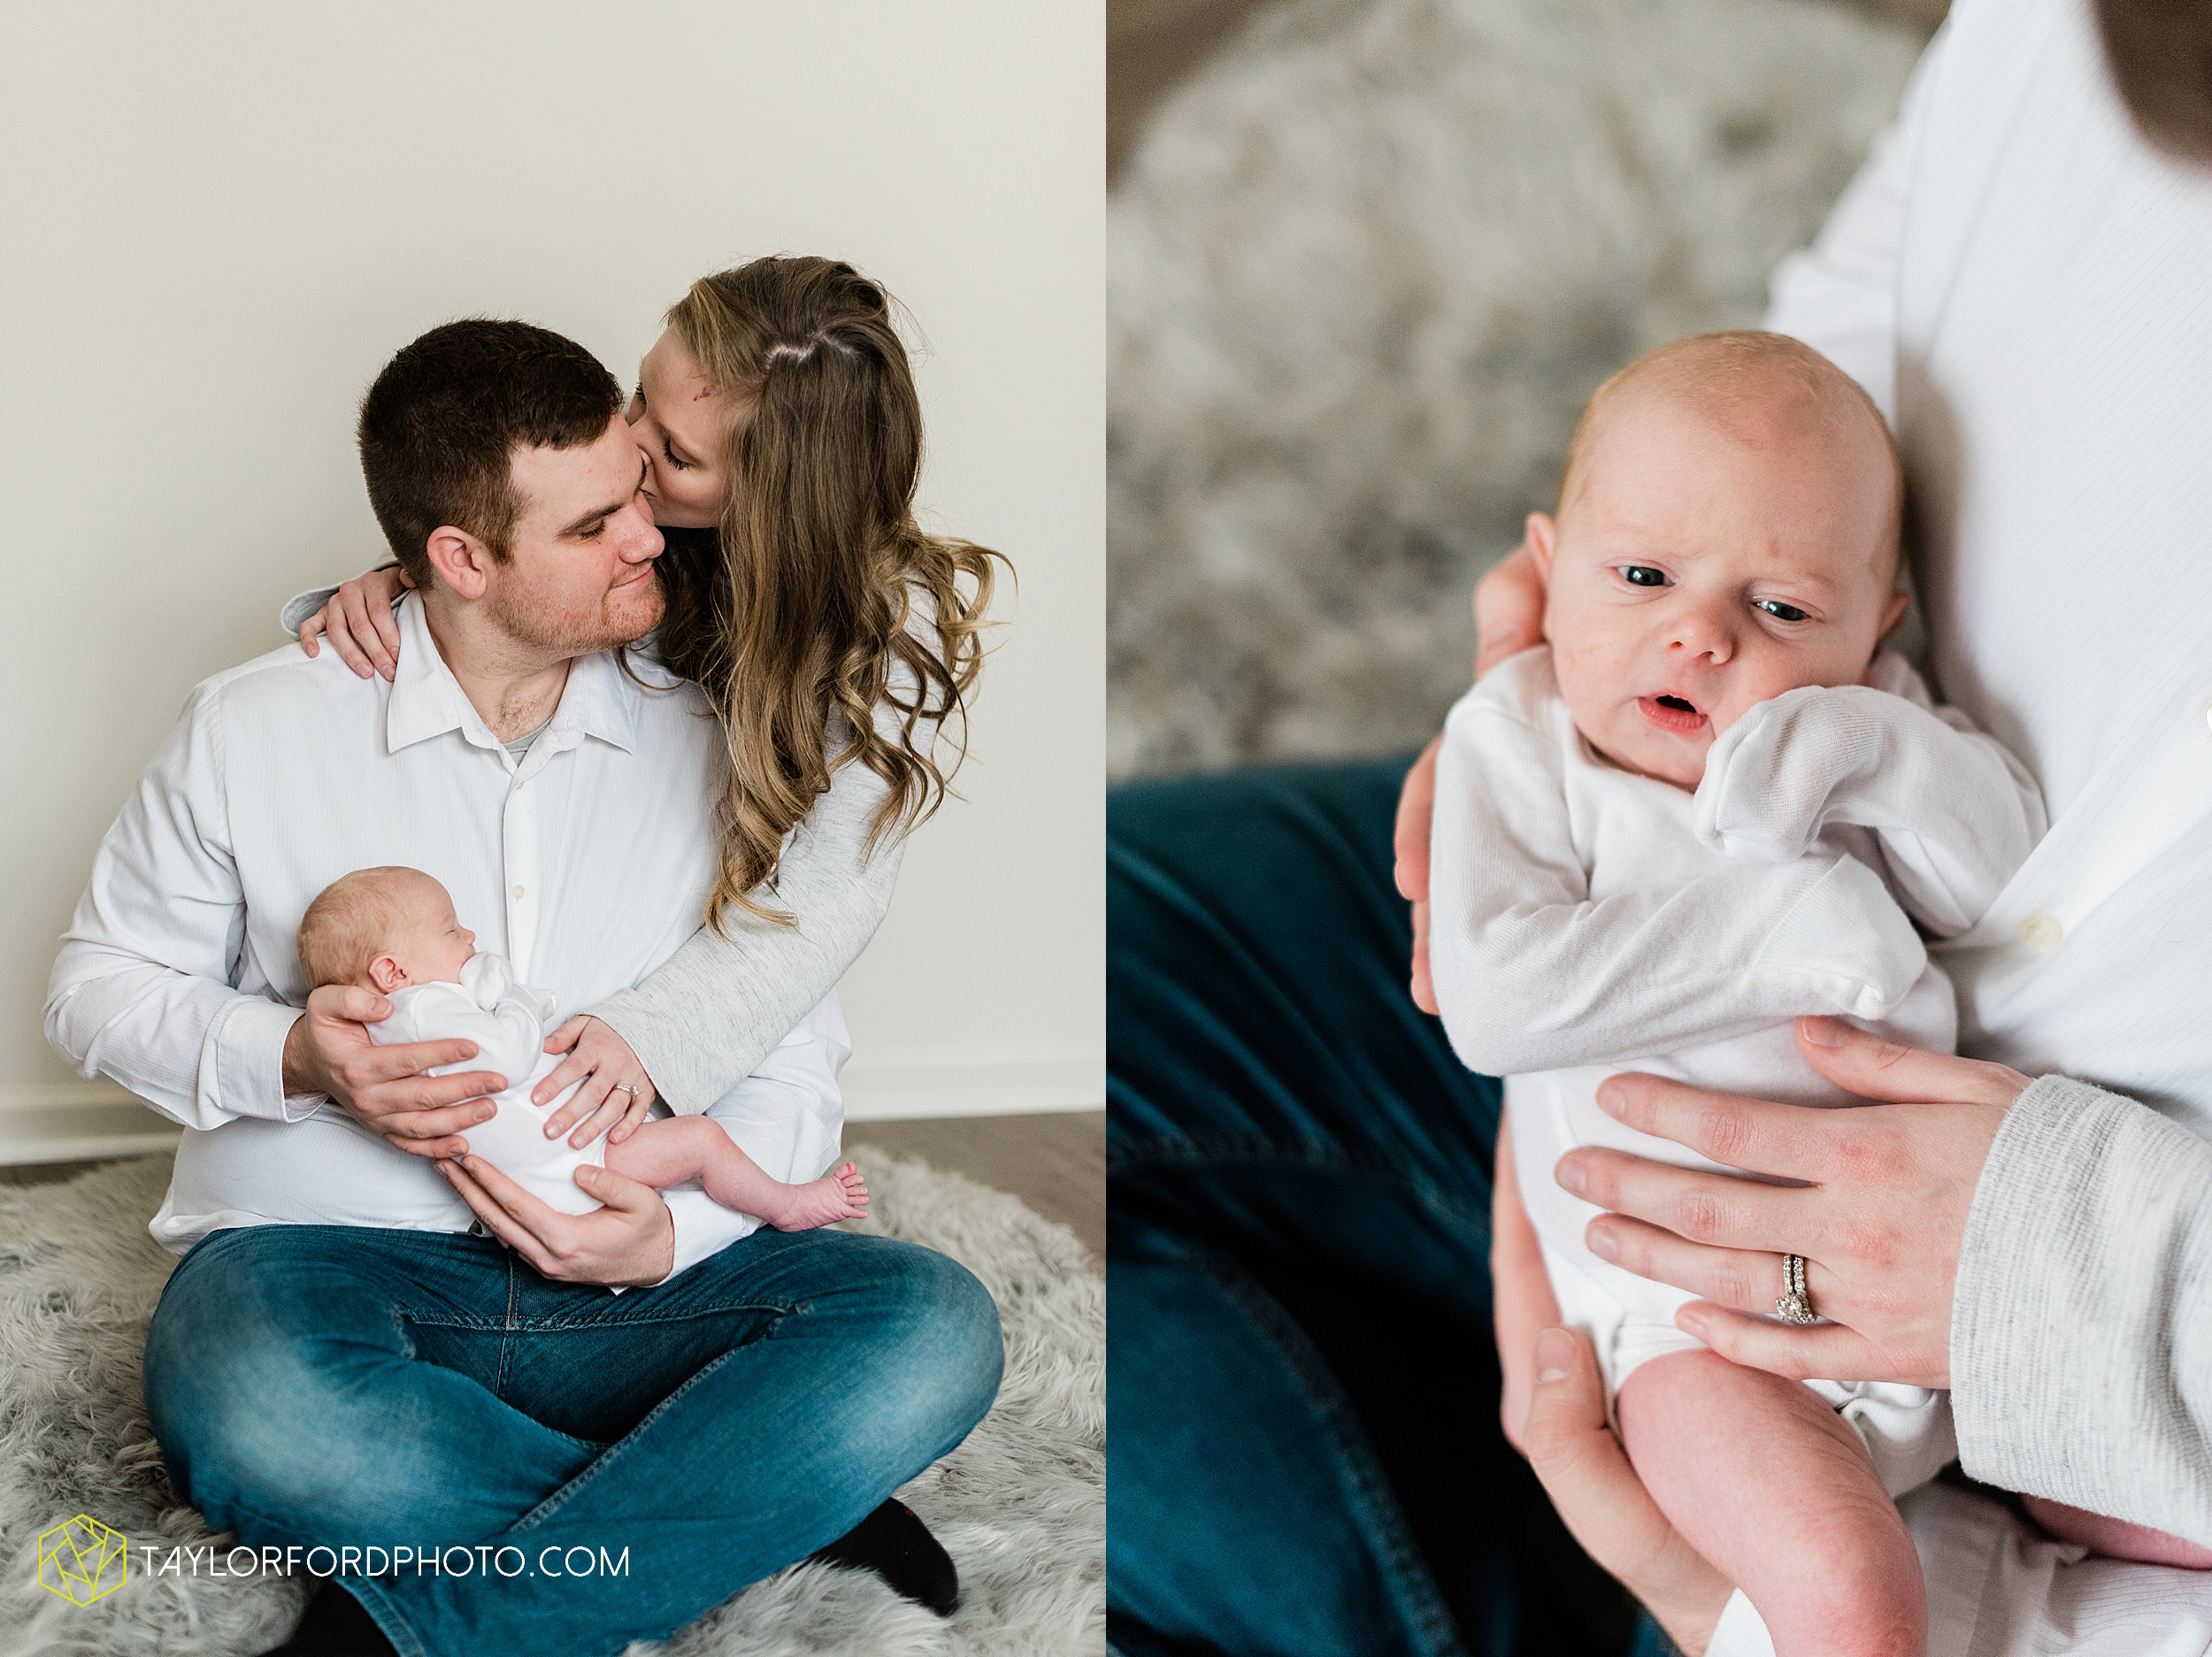 sarah-austin-harrison-lifestyle-at-home-family-newborn-fort-wayne-indiana-photography-taylor-ford-hirschy-photographer_2368.jpg